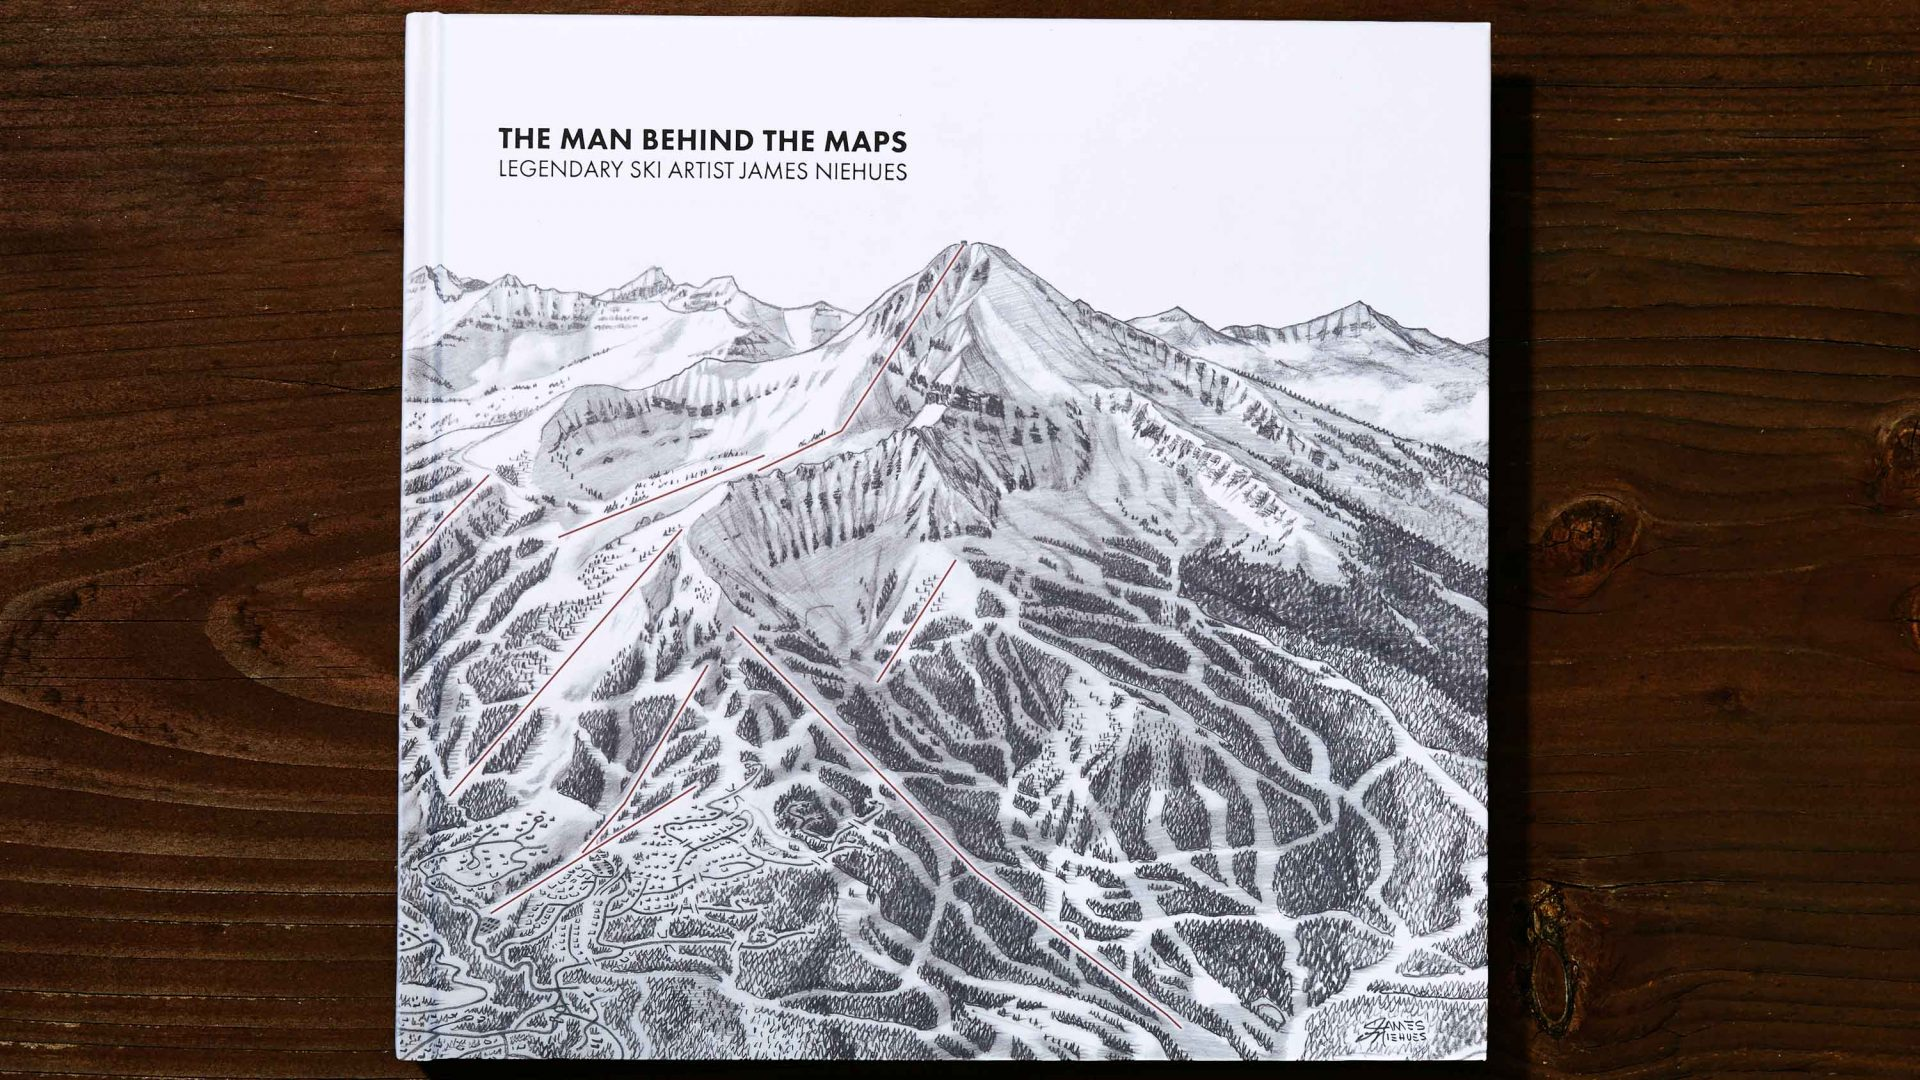 The black-and-white cover of the book showing an illustrated ski resort.